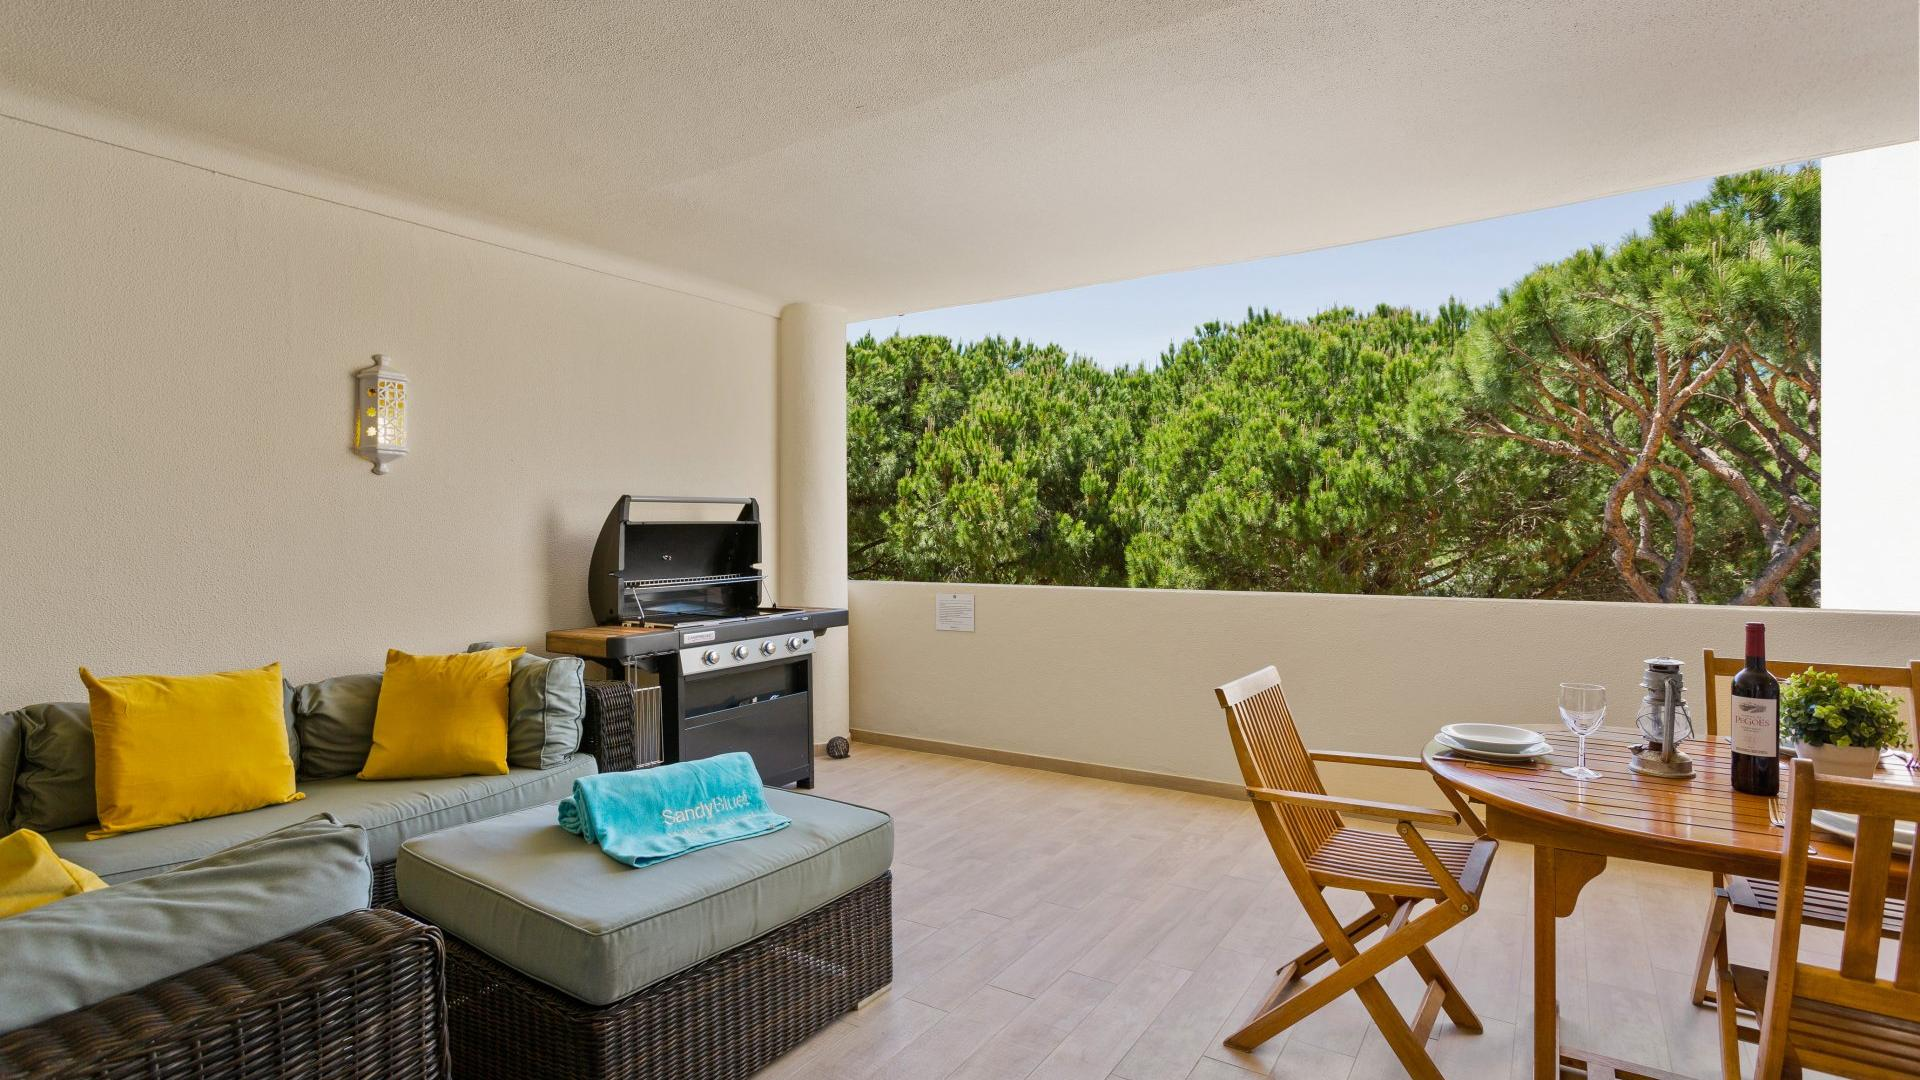 Apartment Gardenia - Jardins do Golfe, Vale do Lobo, Algarve - _G0A6198.jpg